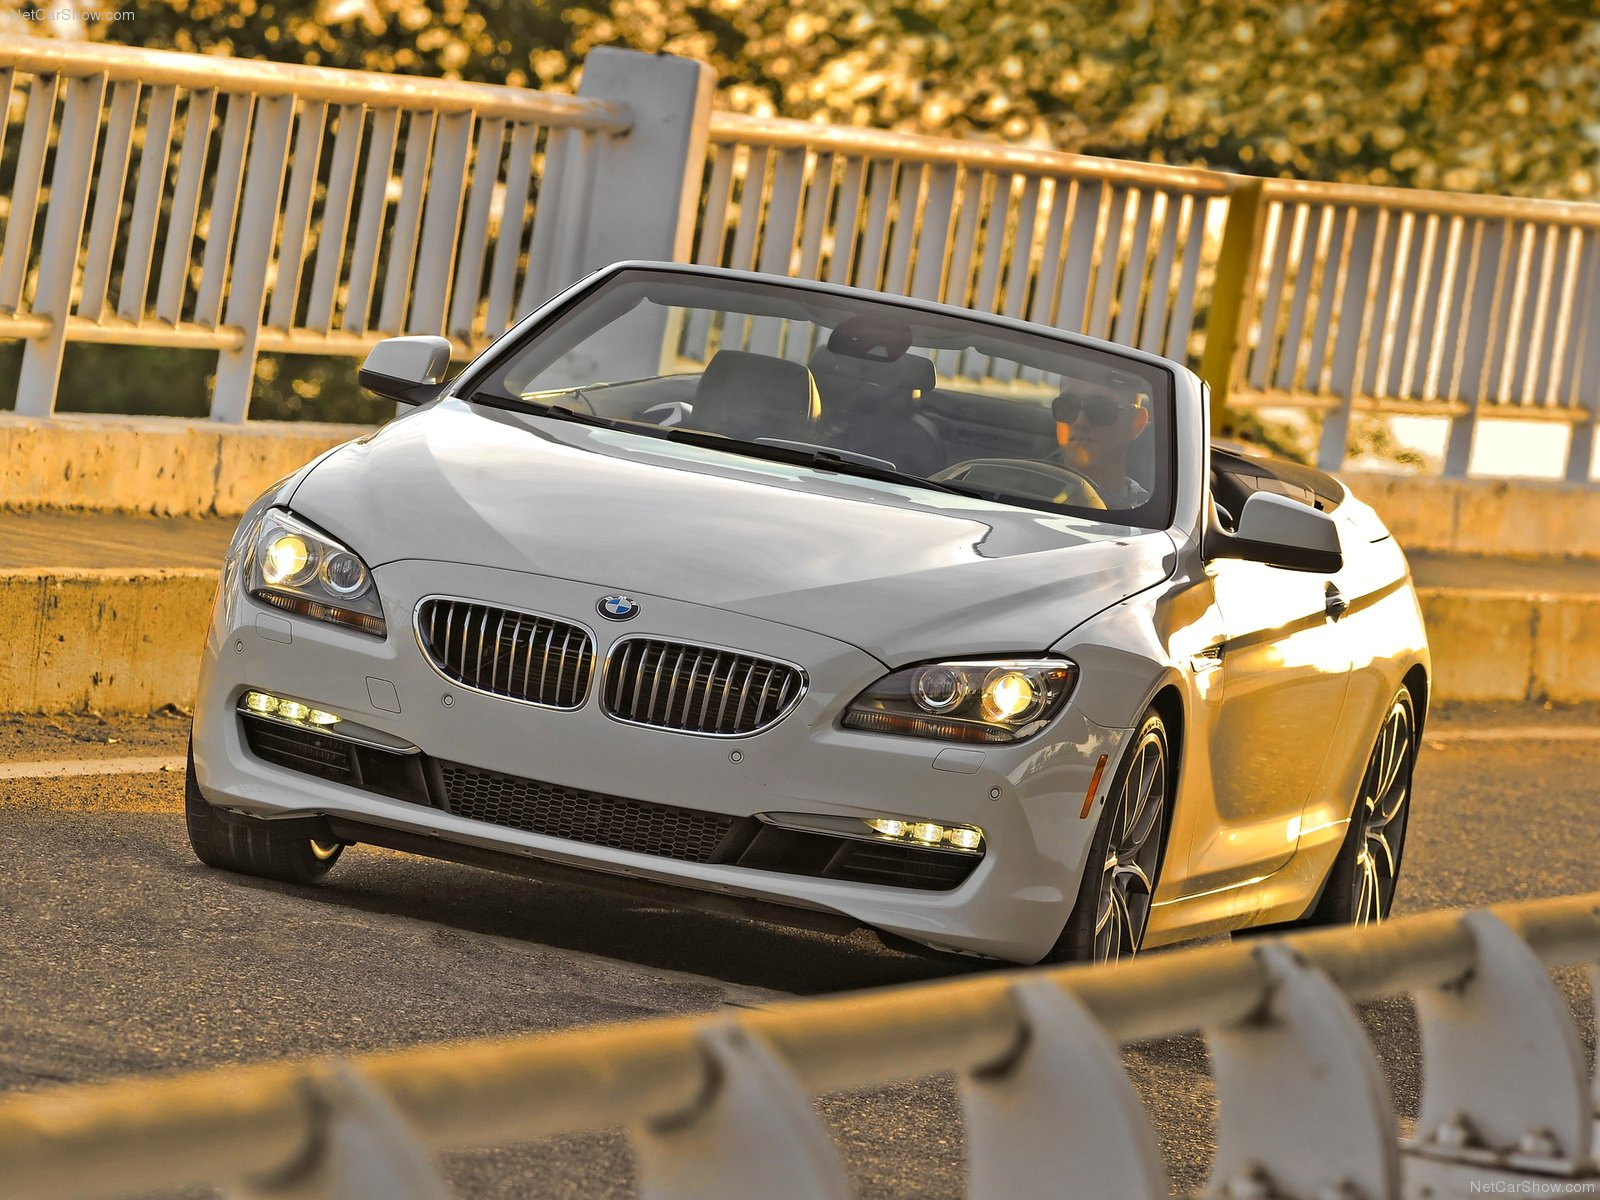 BMW 6-series F13 Convertible photo 81132